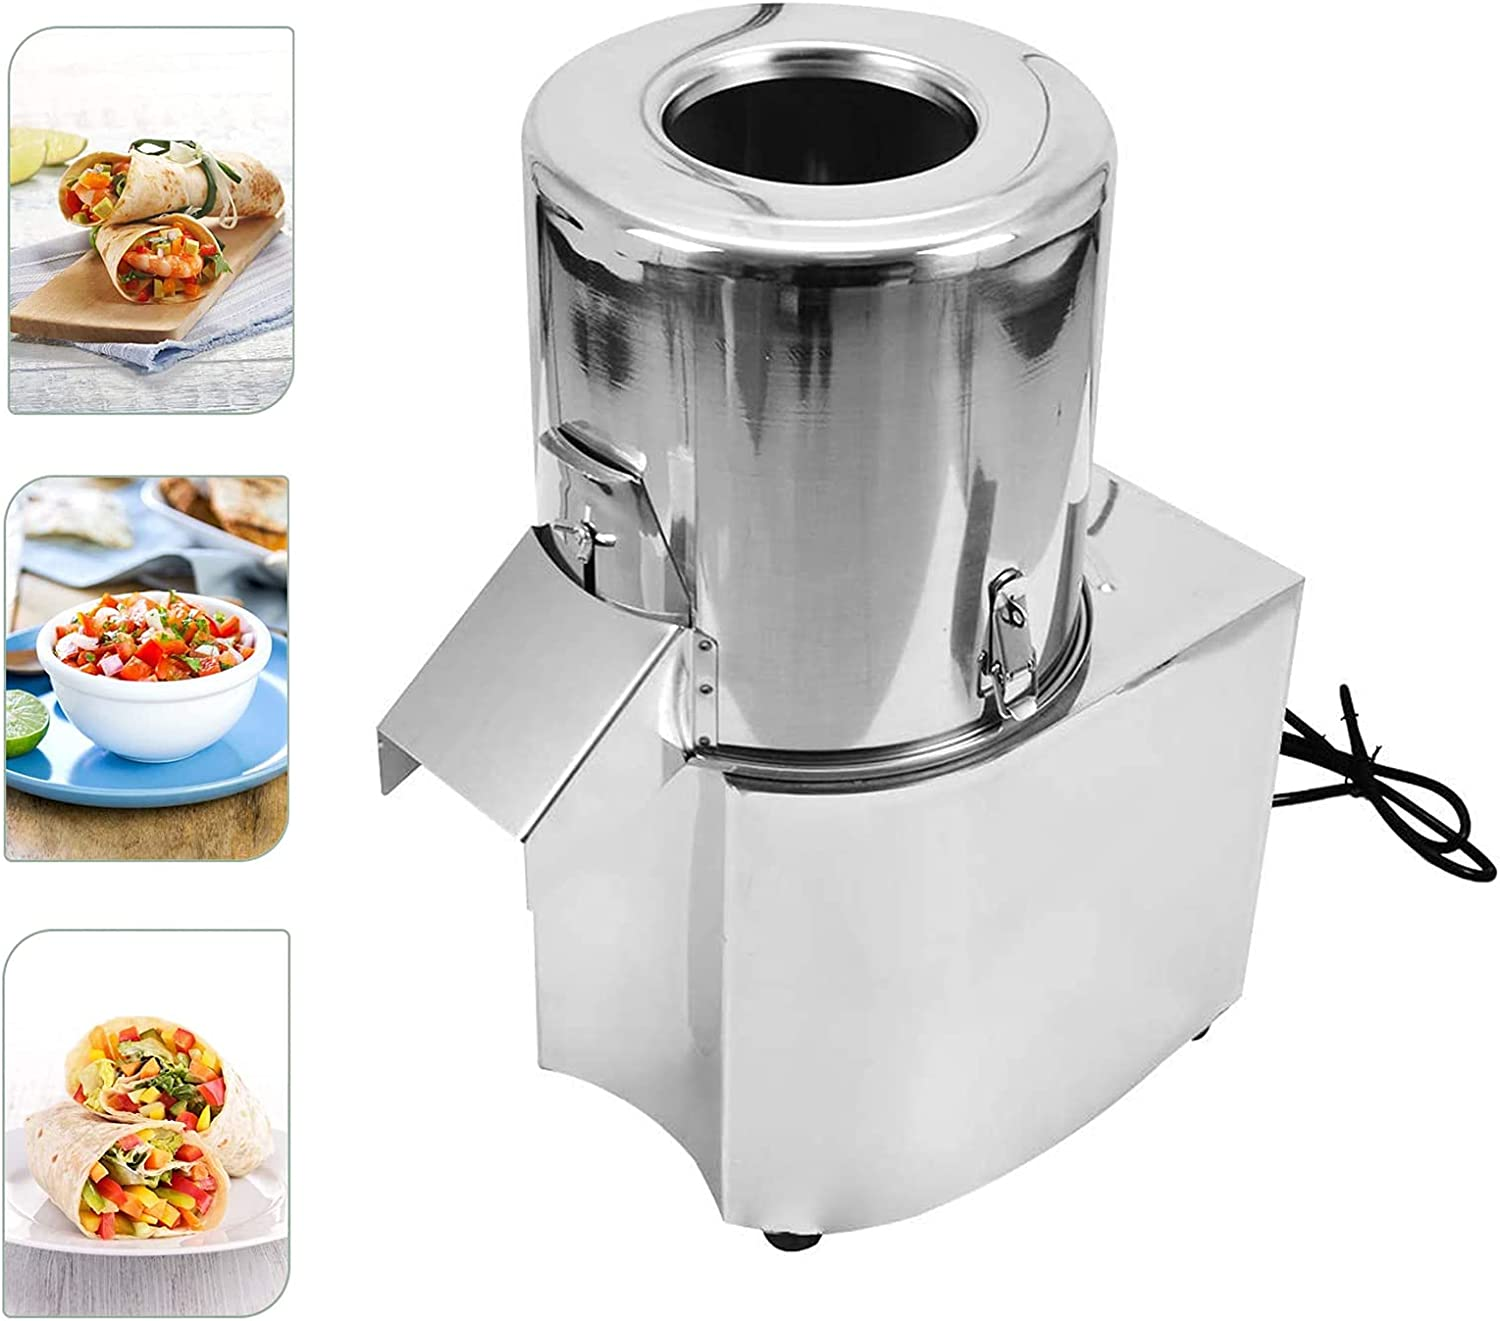 Electric Food Processor, Commercial Vegetable Chopper Meat Grinder Machine Fully Stainless Steel Body & Blades Perfect for Restaurant Home Kitchen Use 110V/550W 120Kg/H